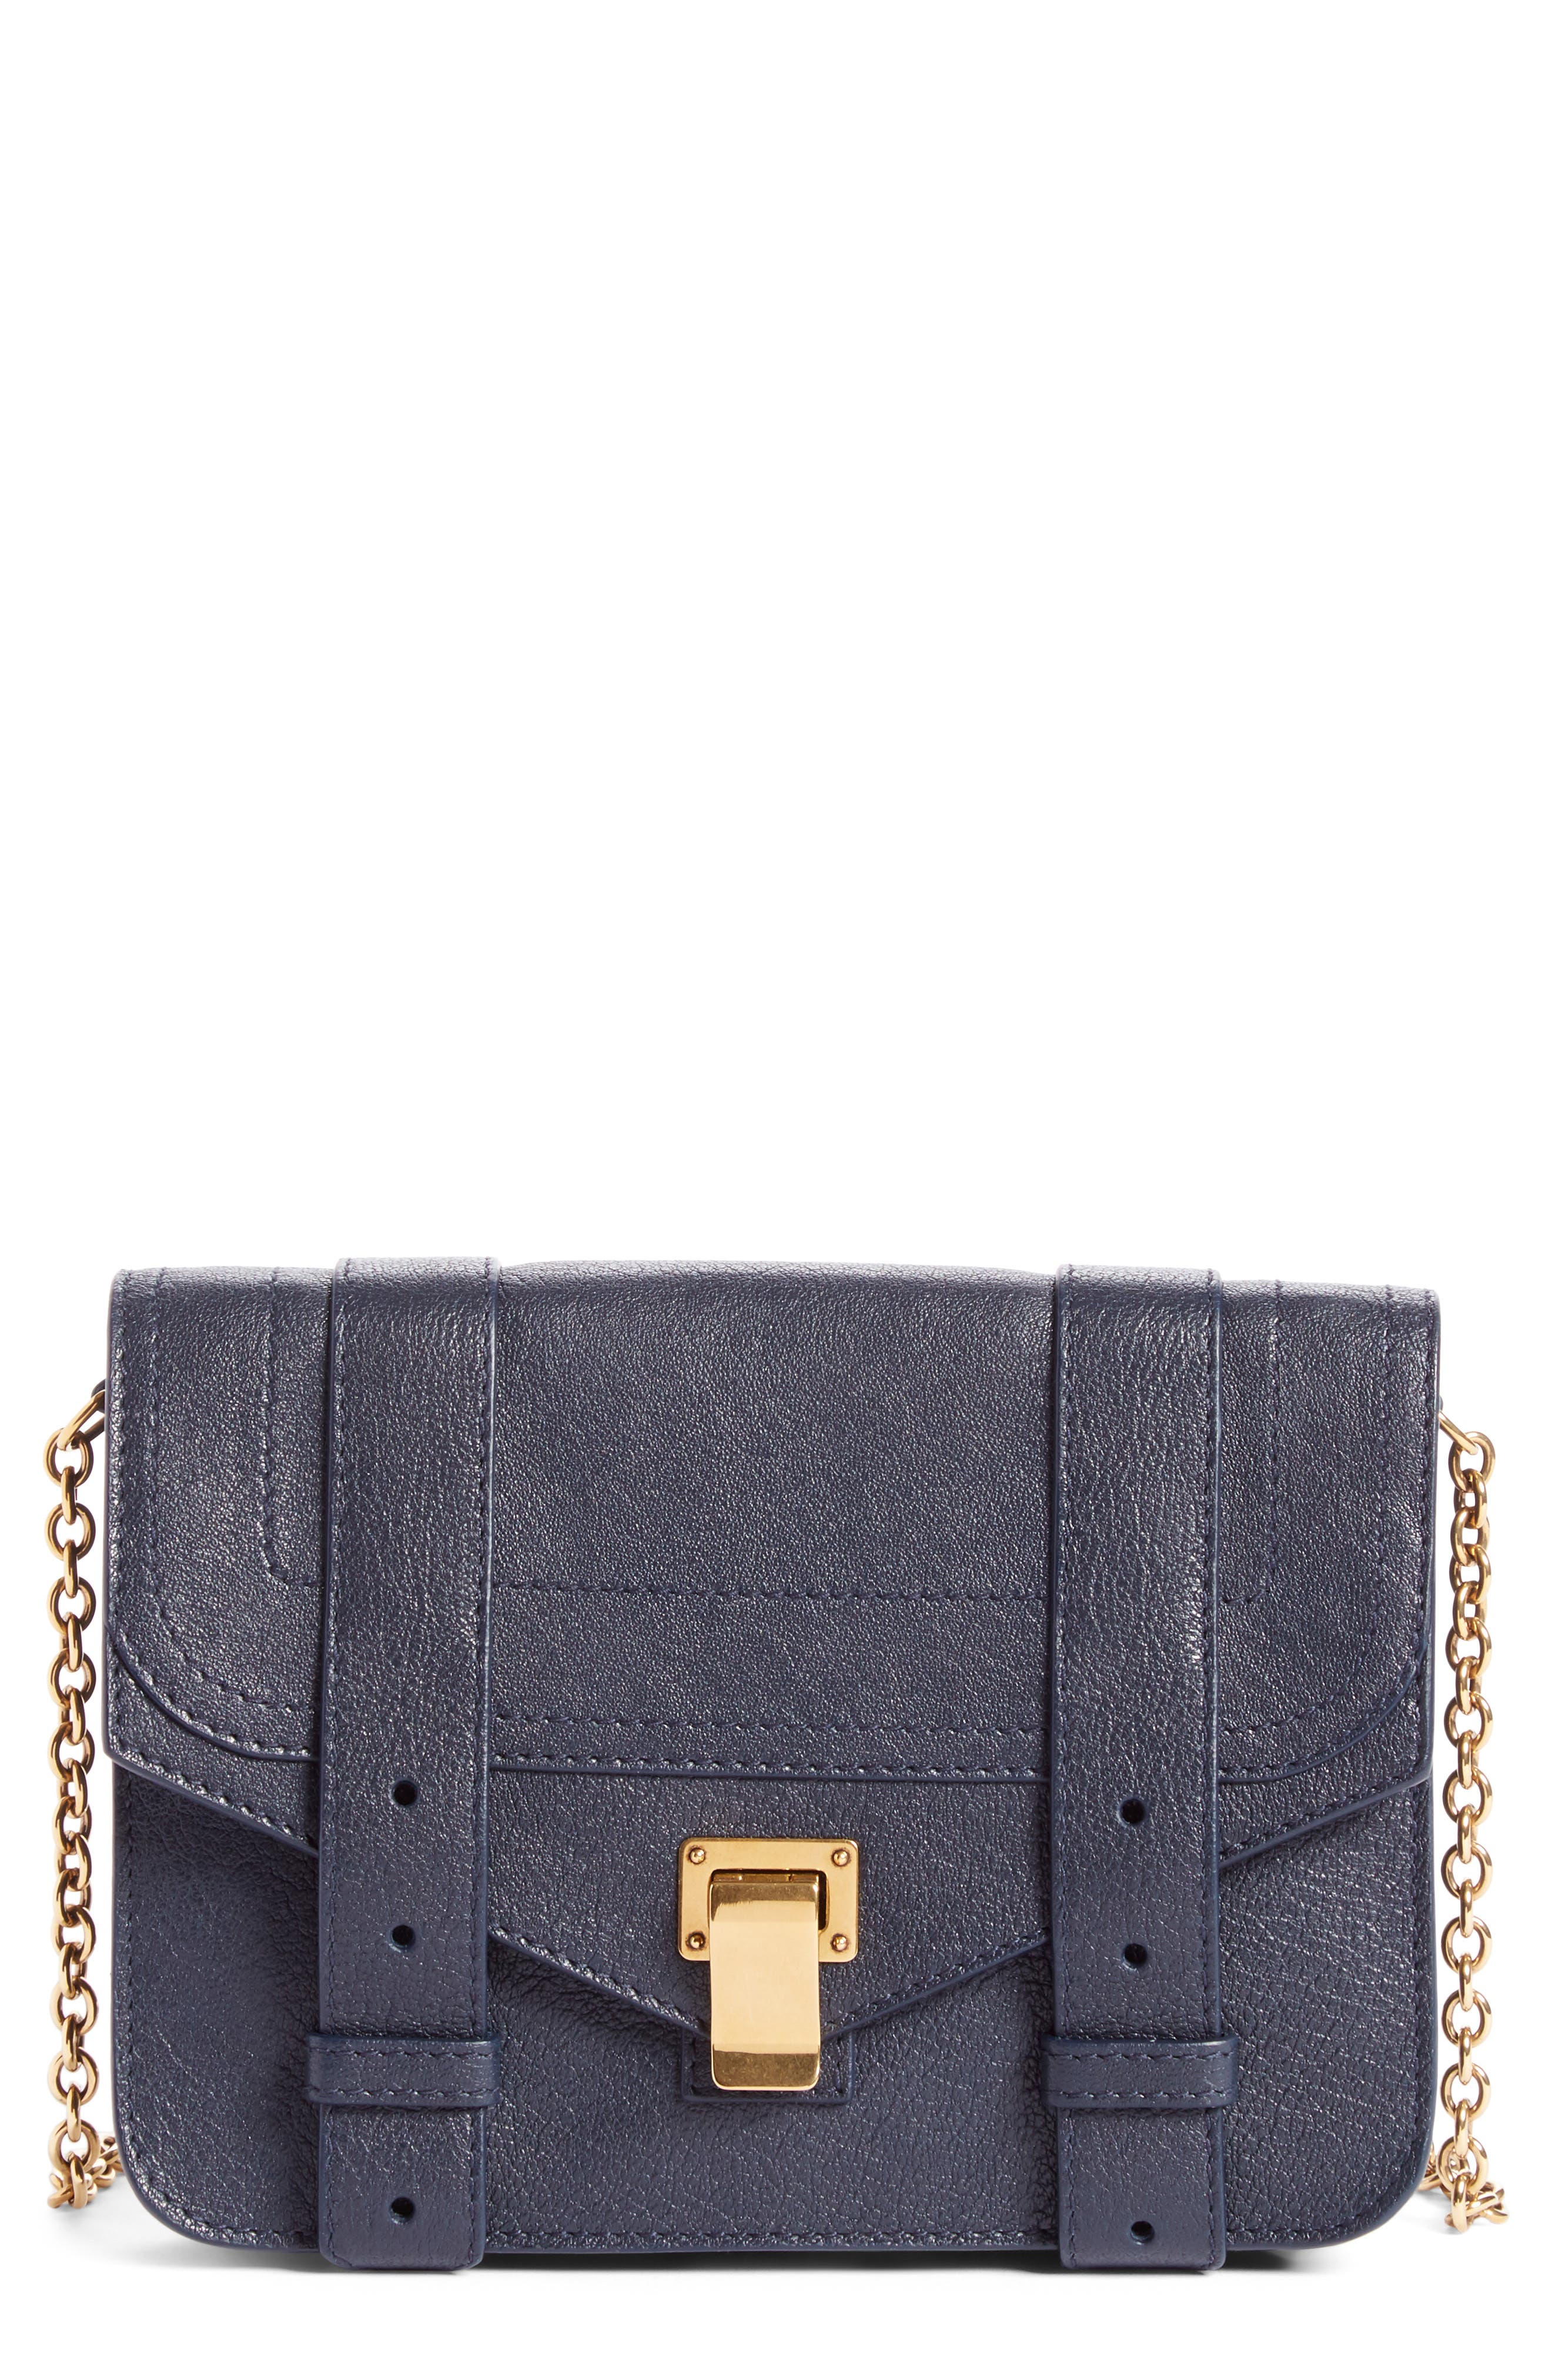 PS1 Lambskin Leather Chain Wallet,                             Main thumbnail 1, color,